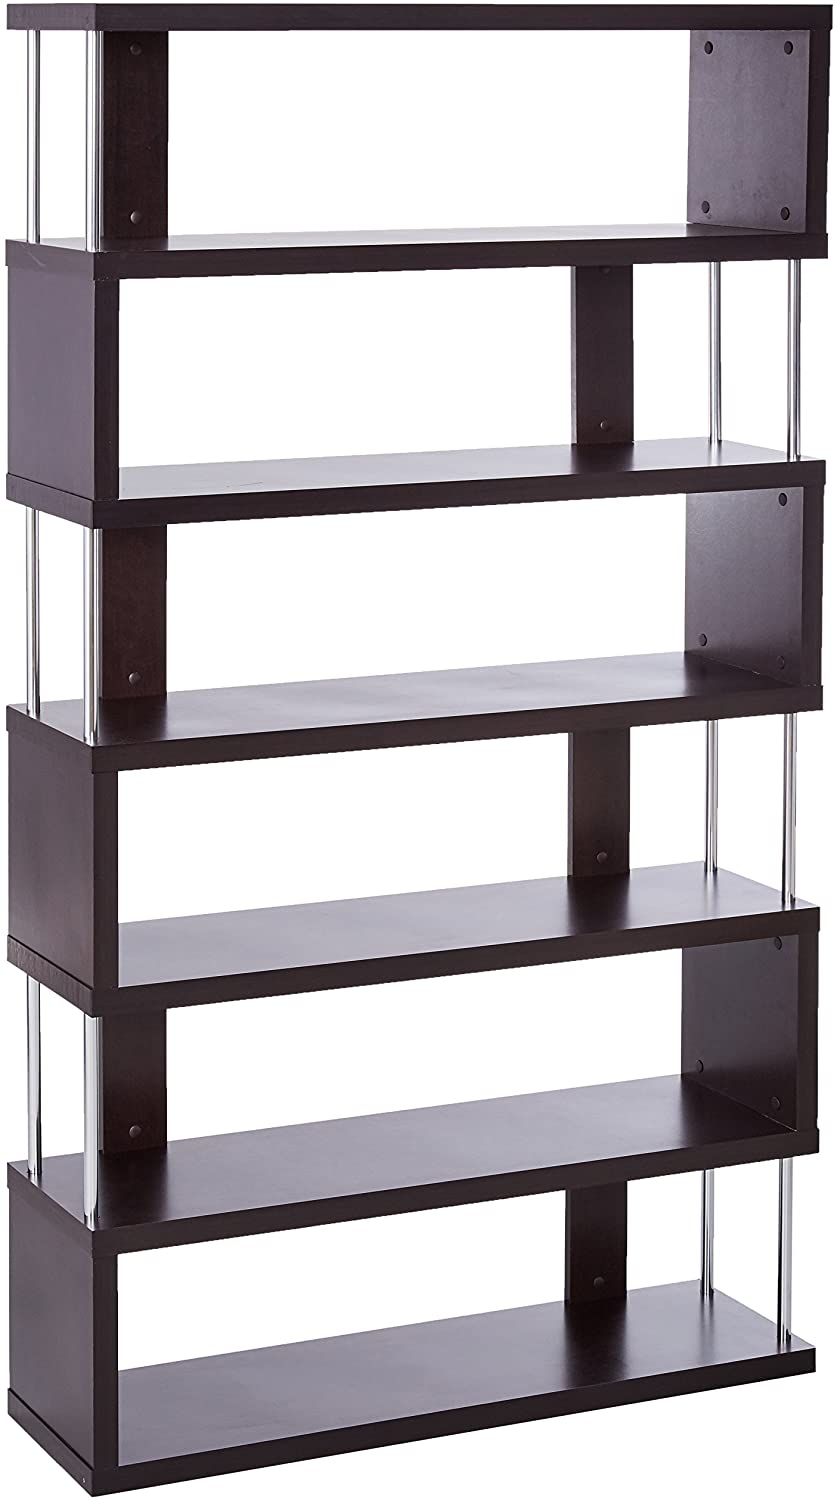 Baxton Studio Barnes 6-Shelf Modern Bookcase, Dark Brown